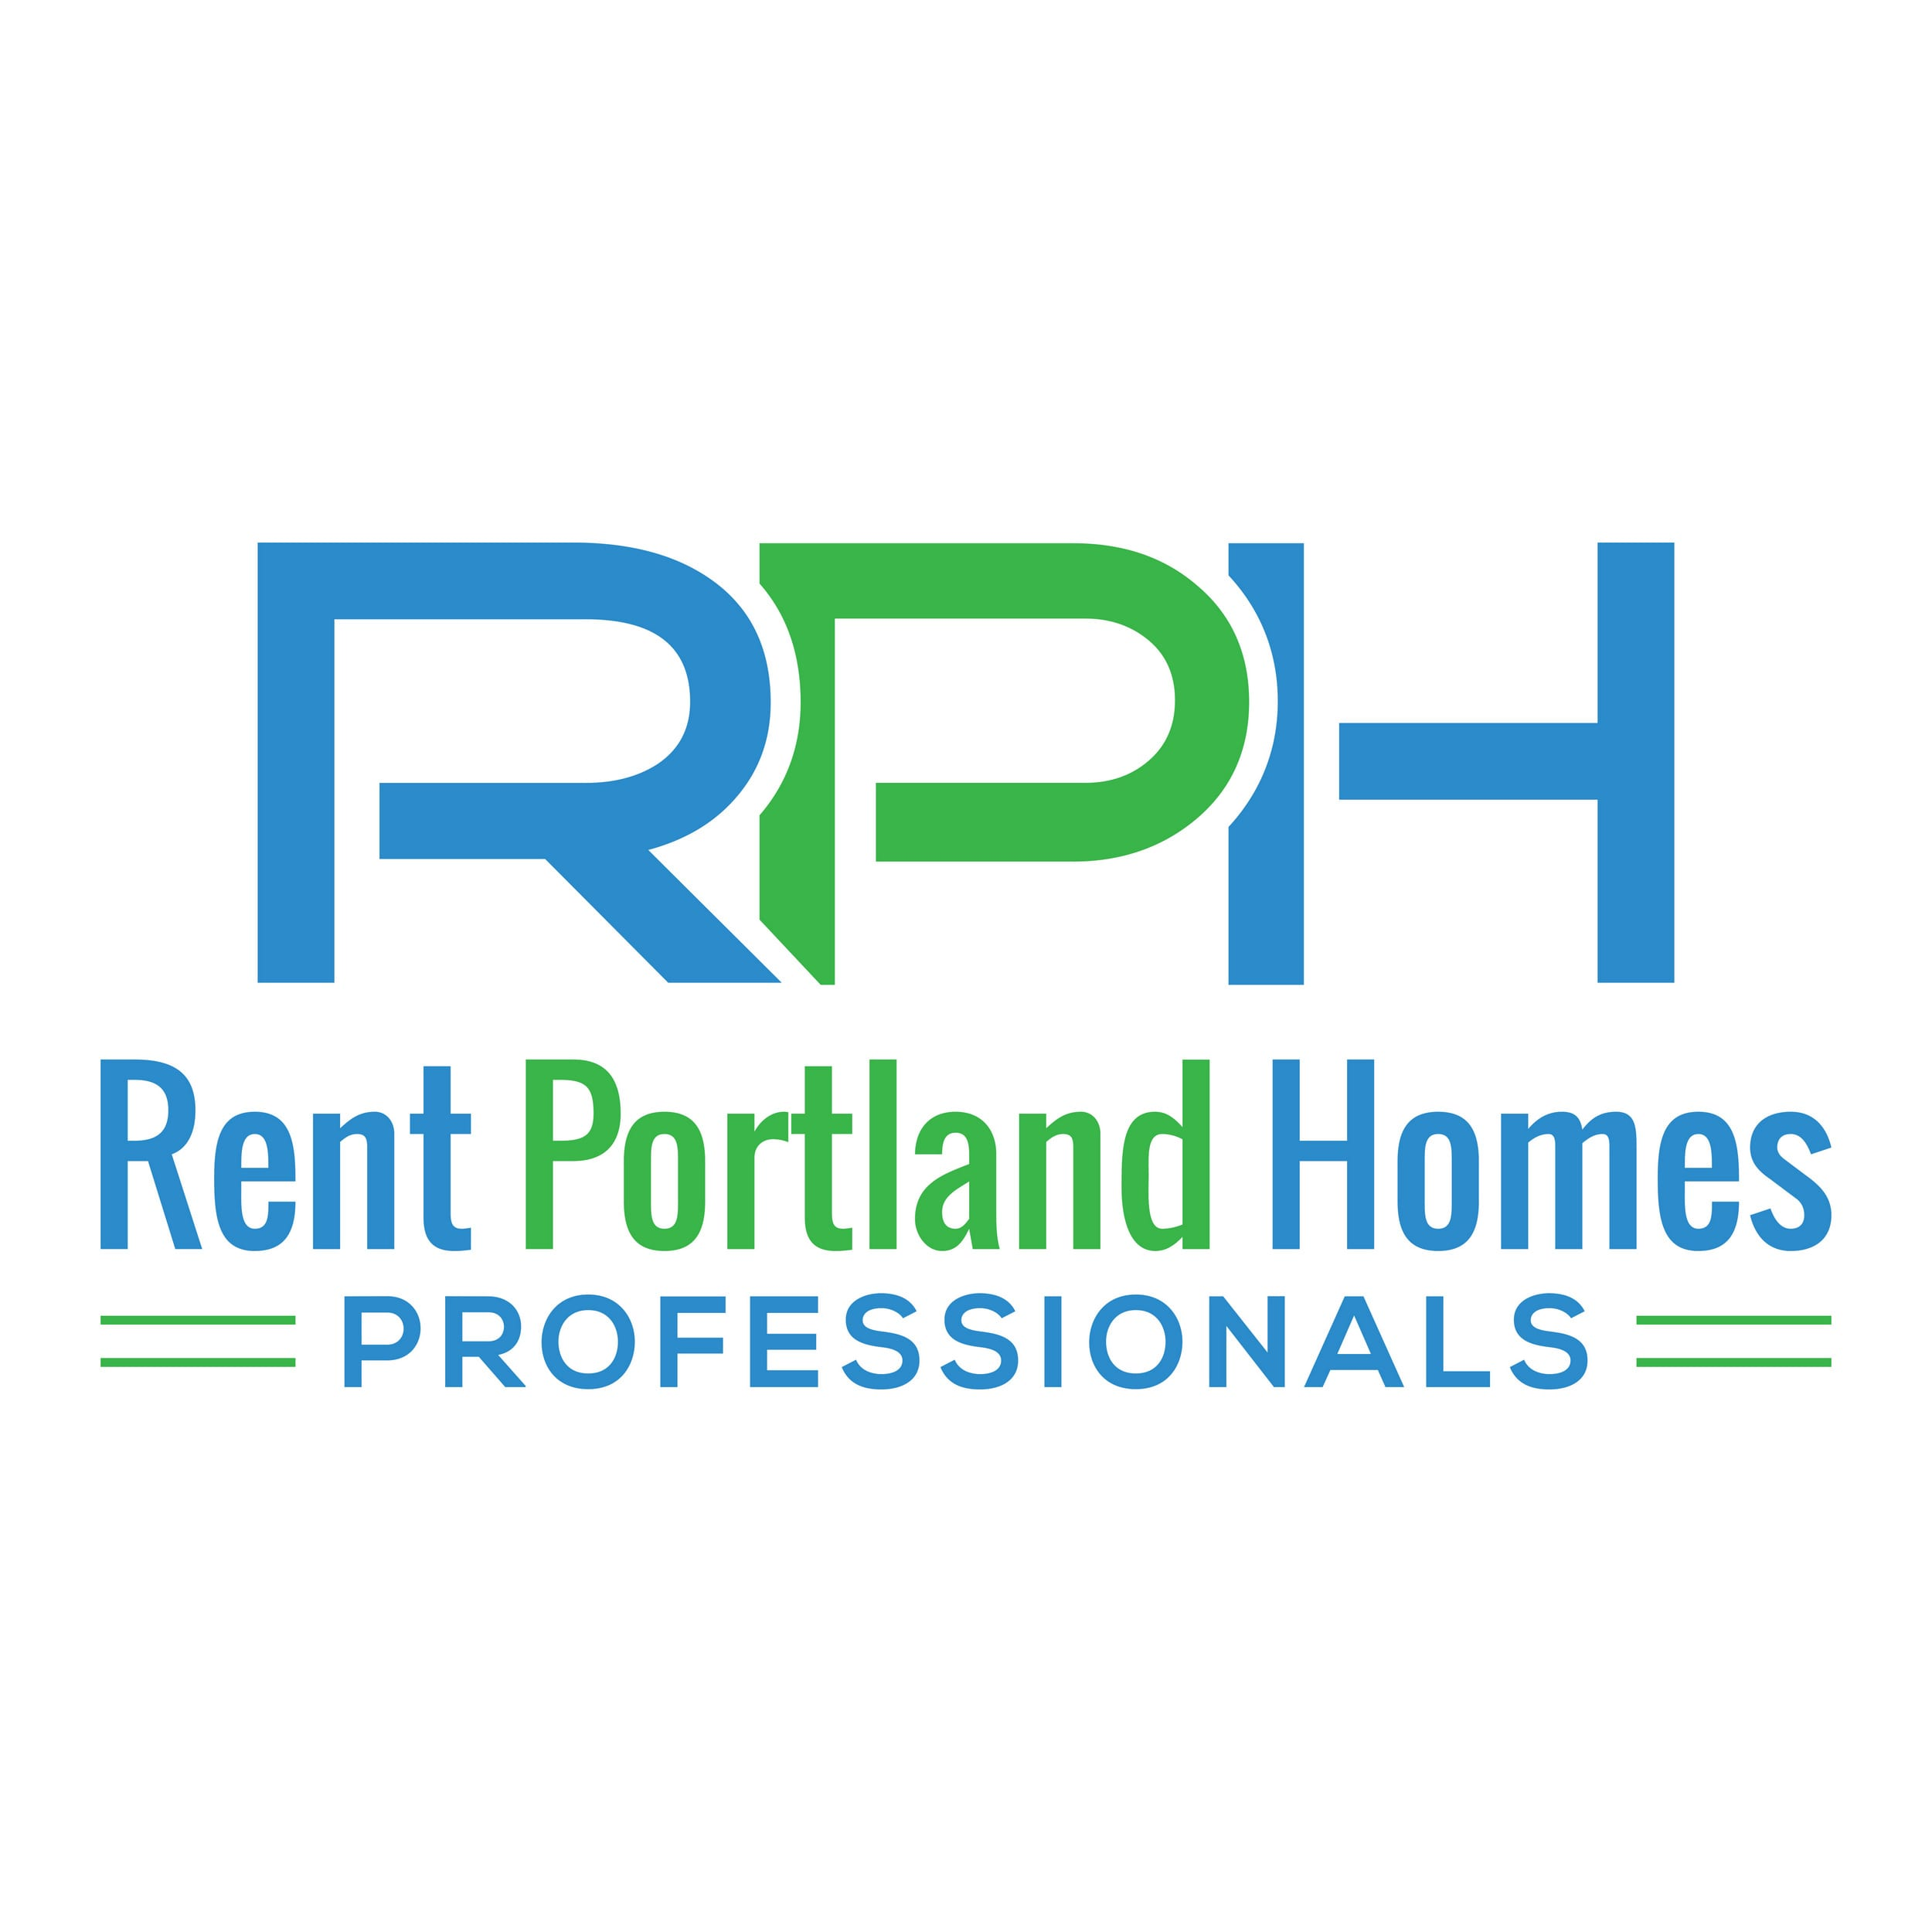 Rent Portland Homes Professionals